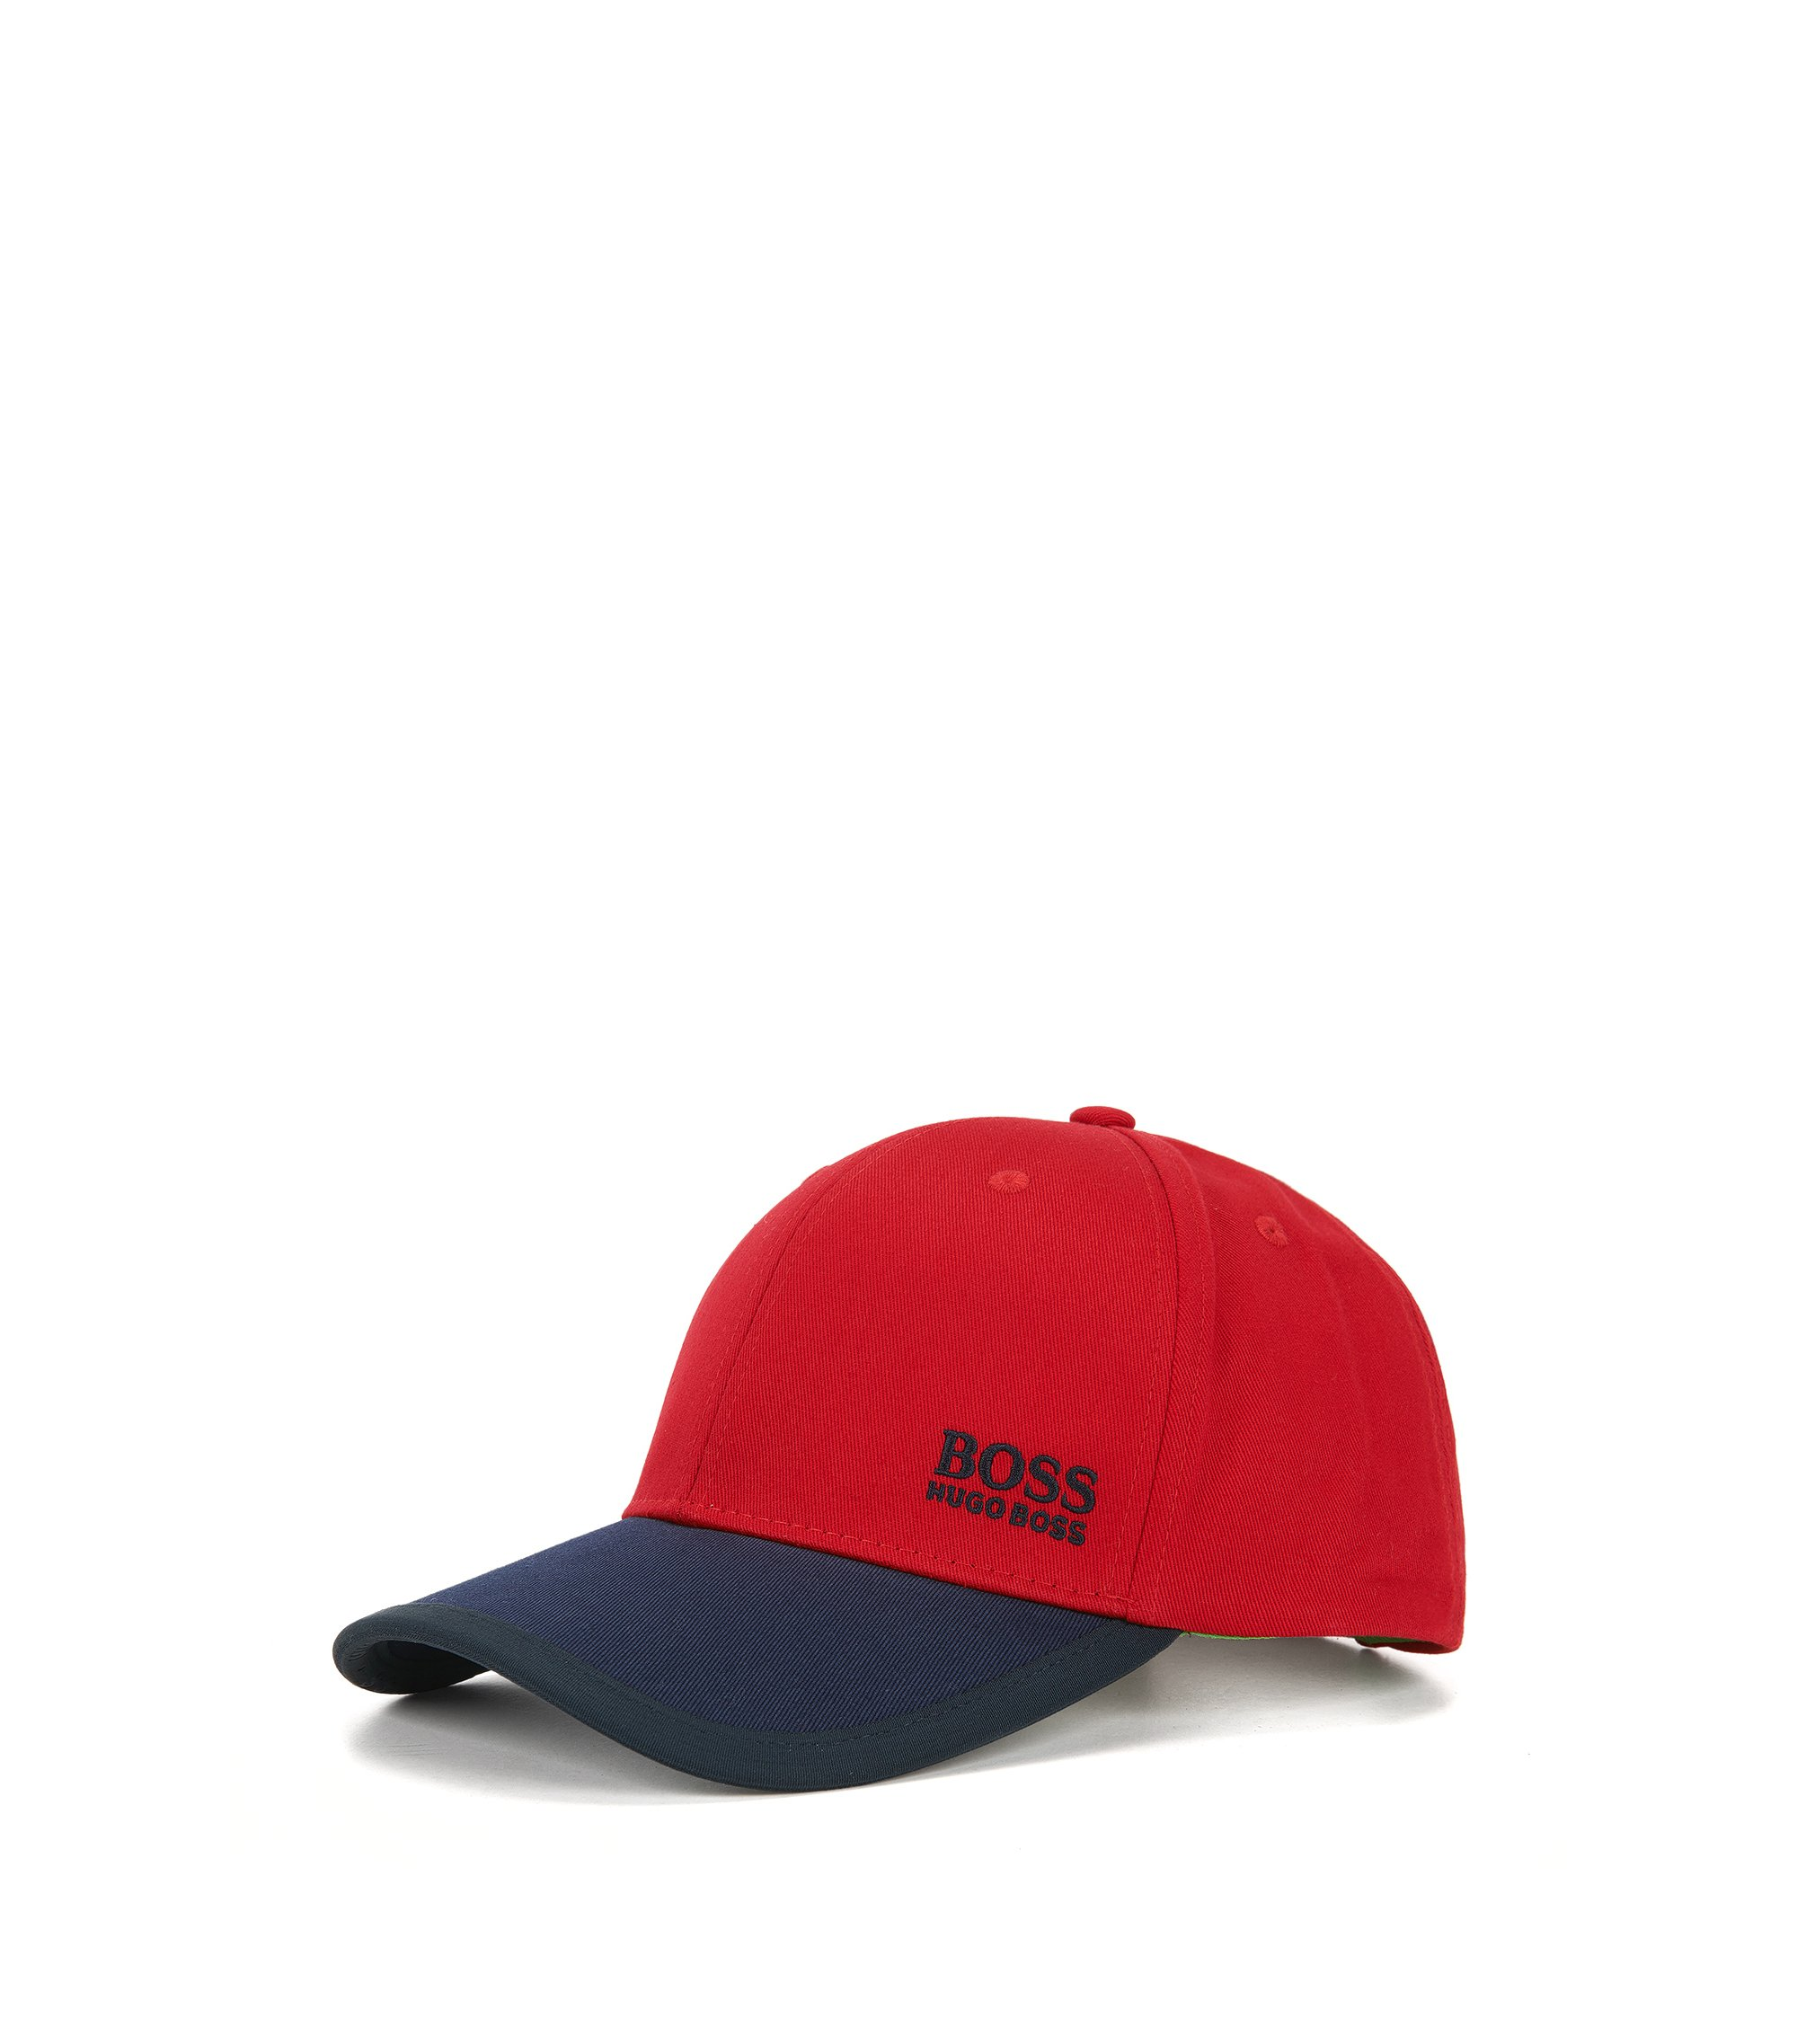 Casquette de base-ball color block en sergé de coton, Rouge